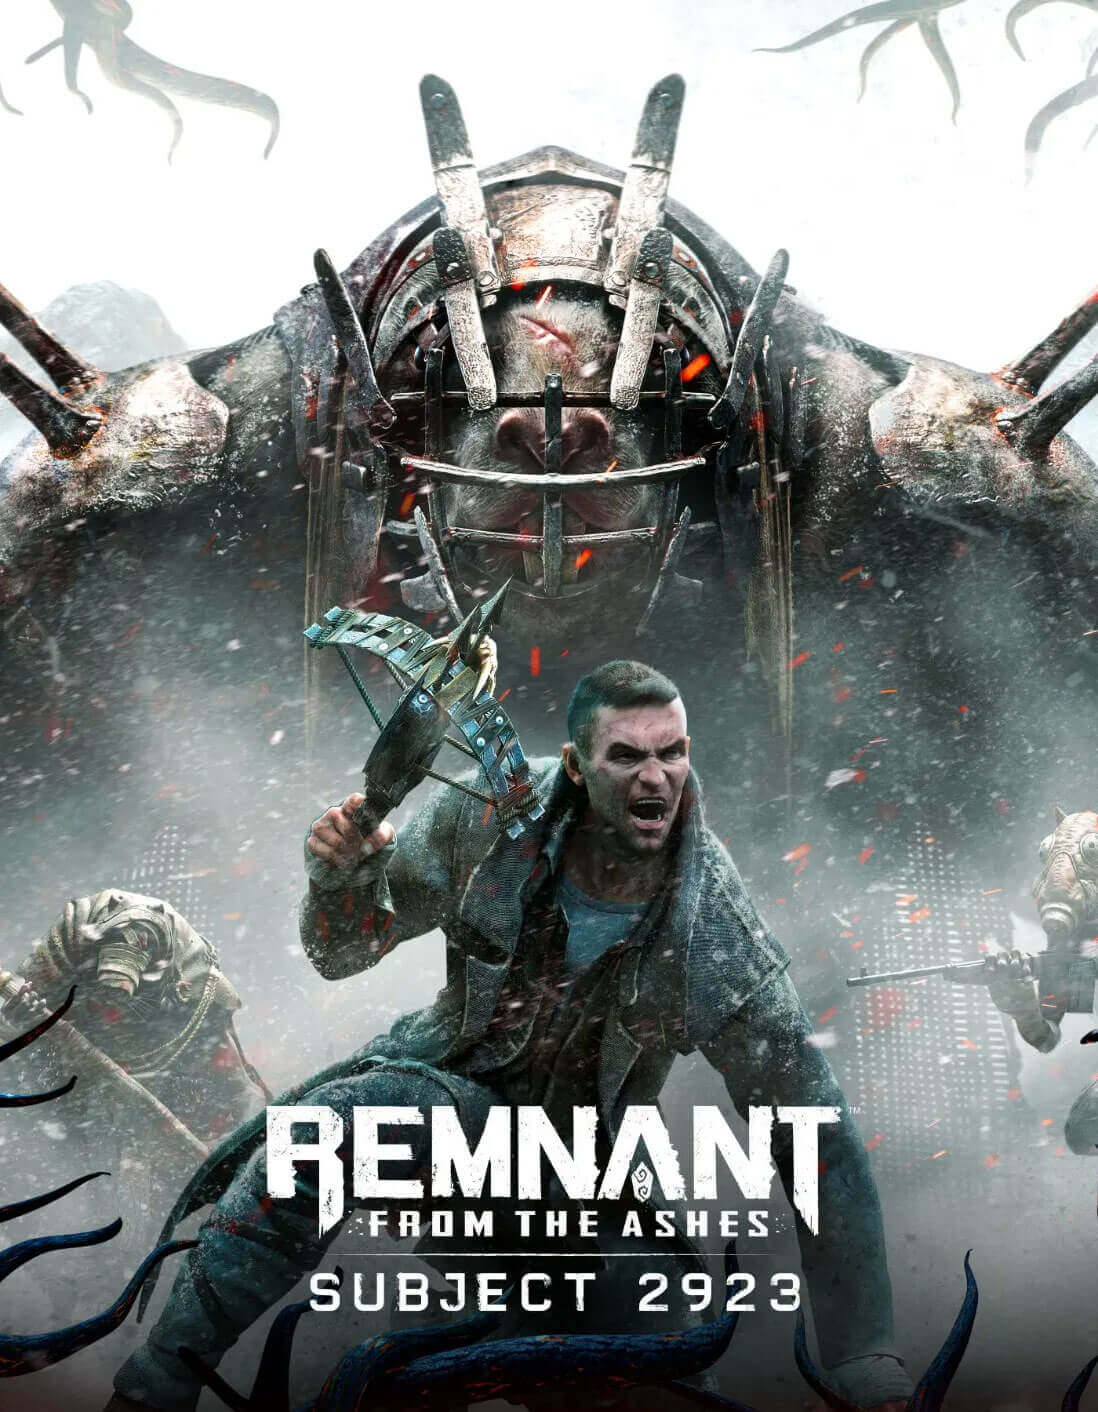 remnant from the ashes subject 2923 release date،remnant from the ashes subject 2923 price،remnant from the ashes dlc subject 2923،remnant from the ashes subject 2923 release،remnant from the ashes subject 2923 dlc،remnant from the ashes subject 2923 weapons،remnant from the ashes subject 2923 ps4،remnant from the ashes subject 2923 reddit،remnant from the ashes subject 2923 armor